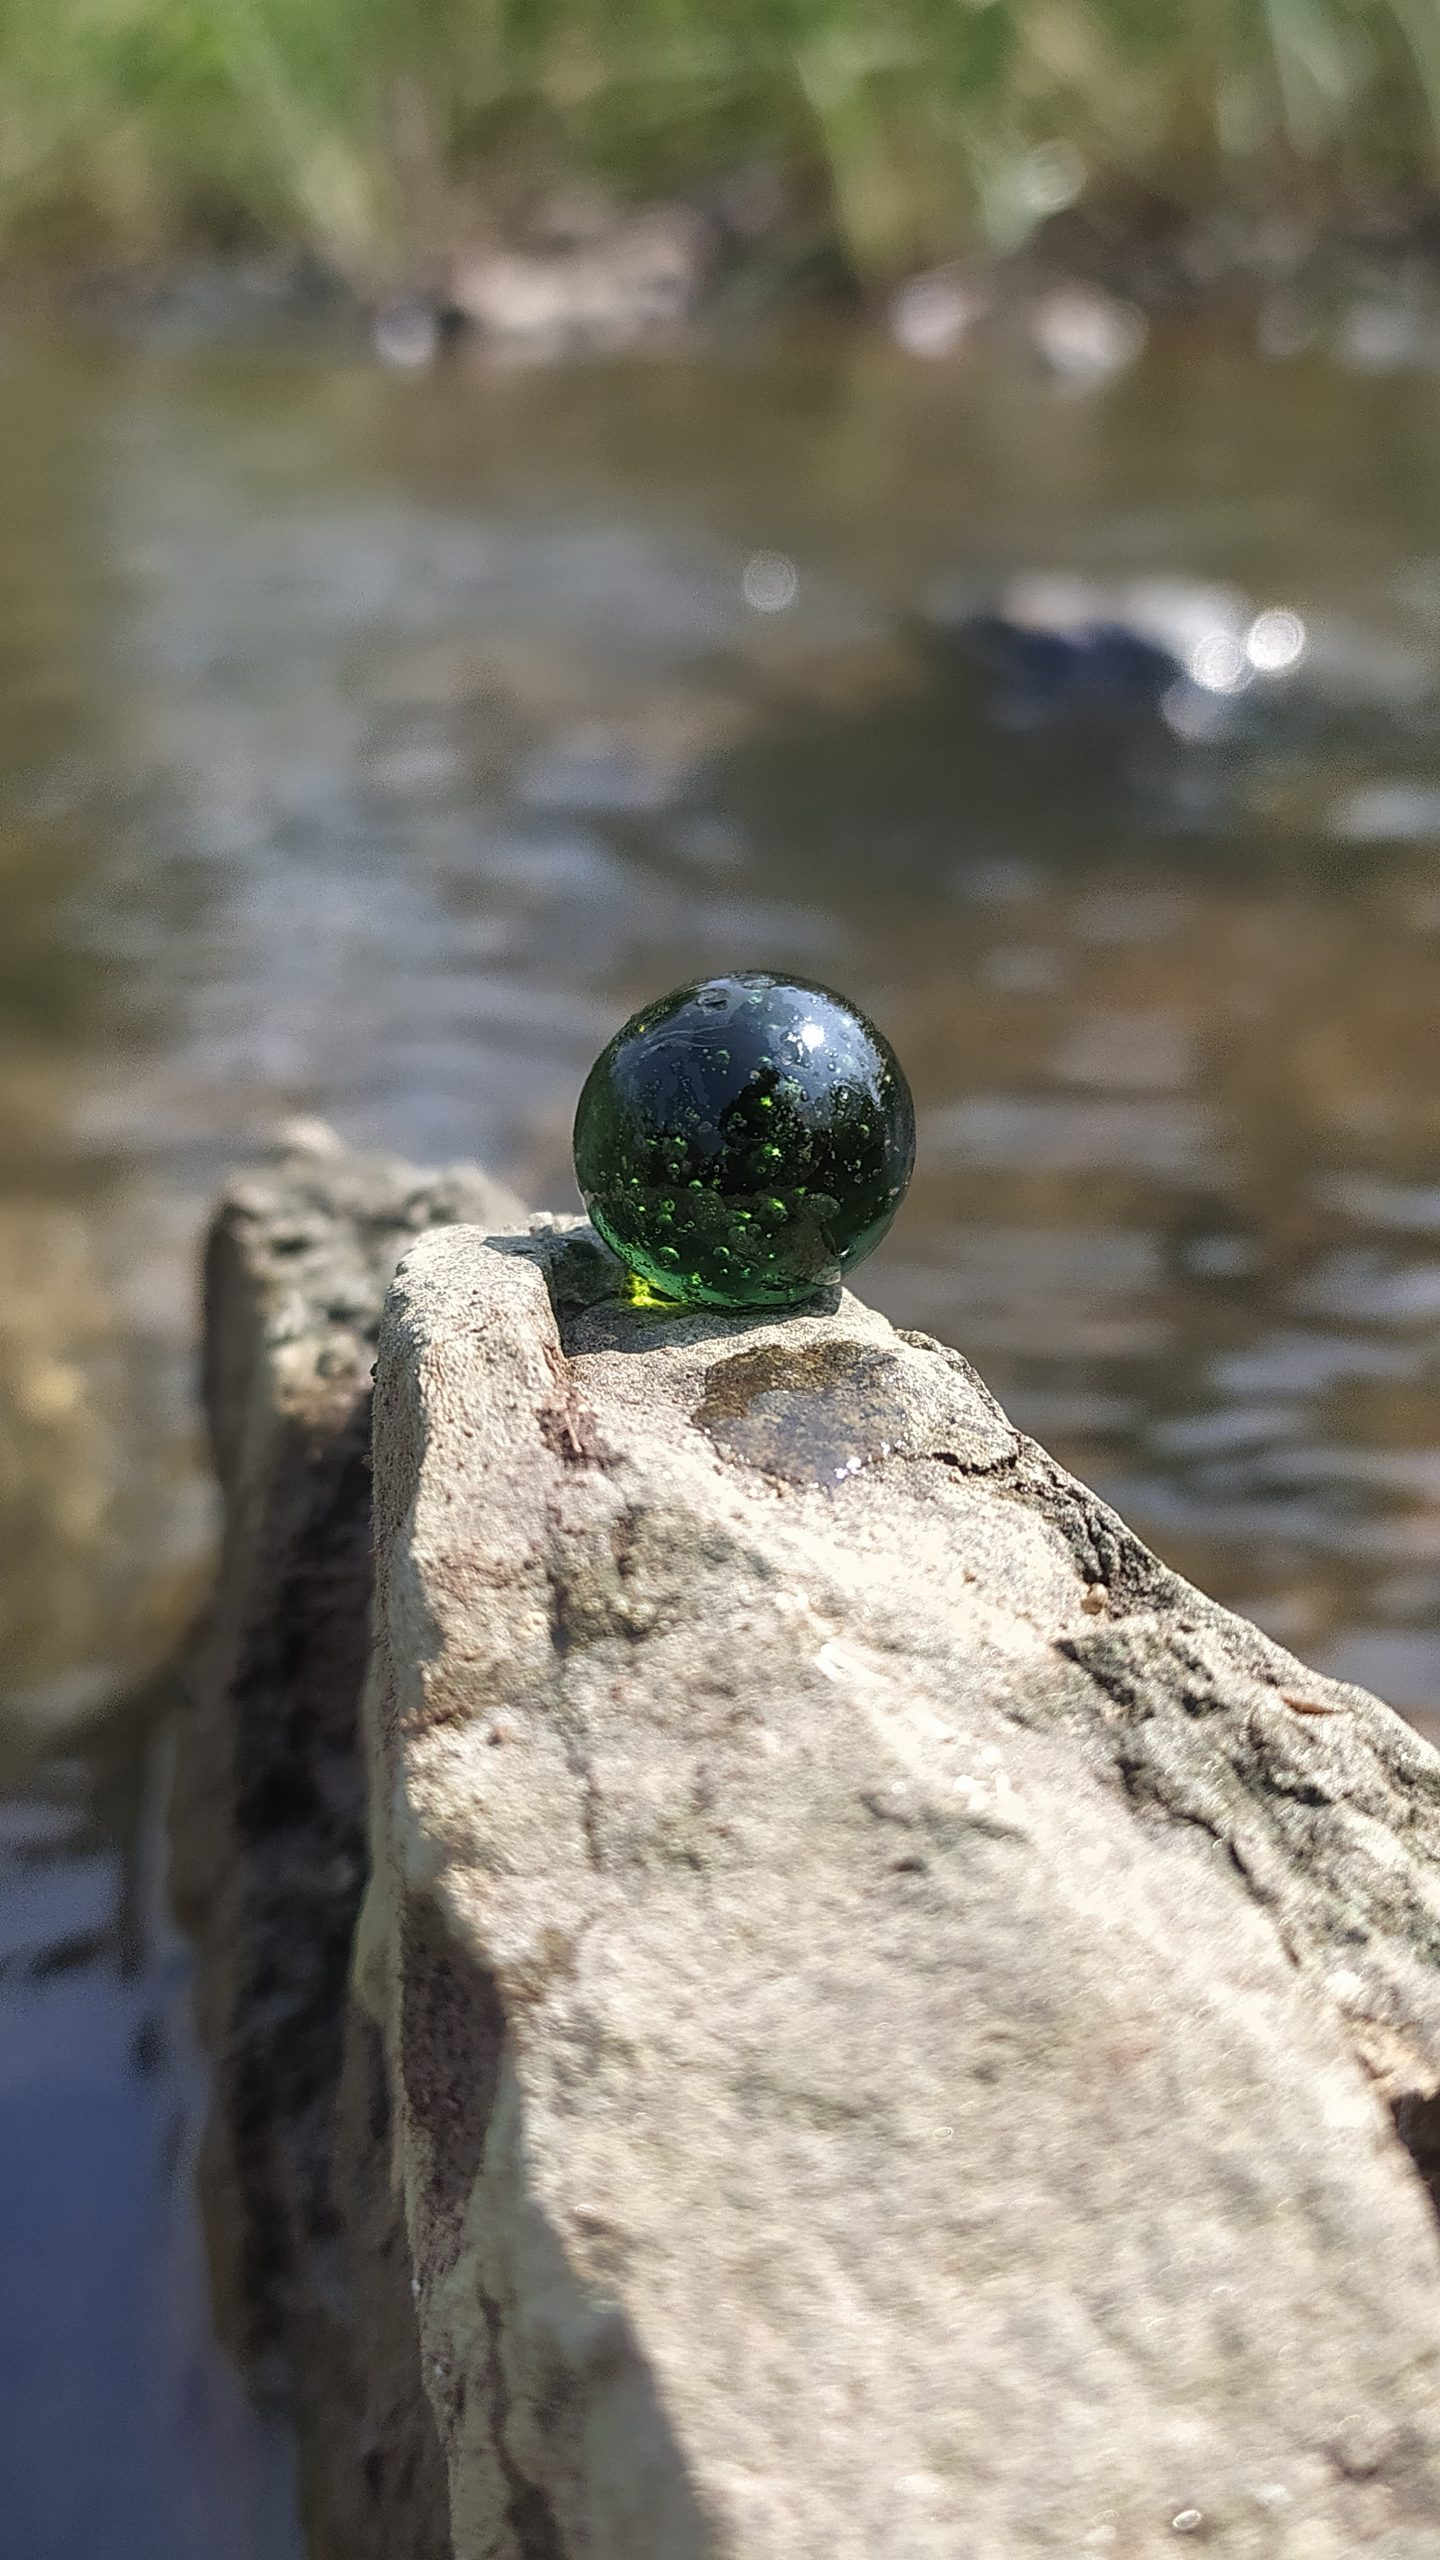 A marvel ball on a stone